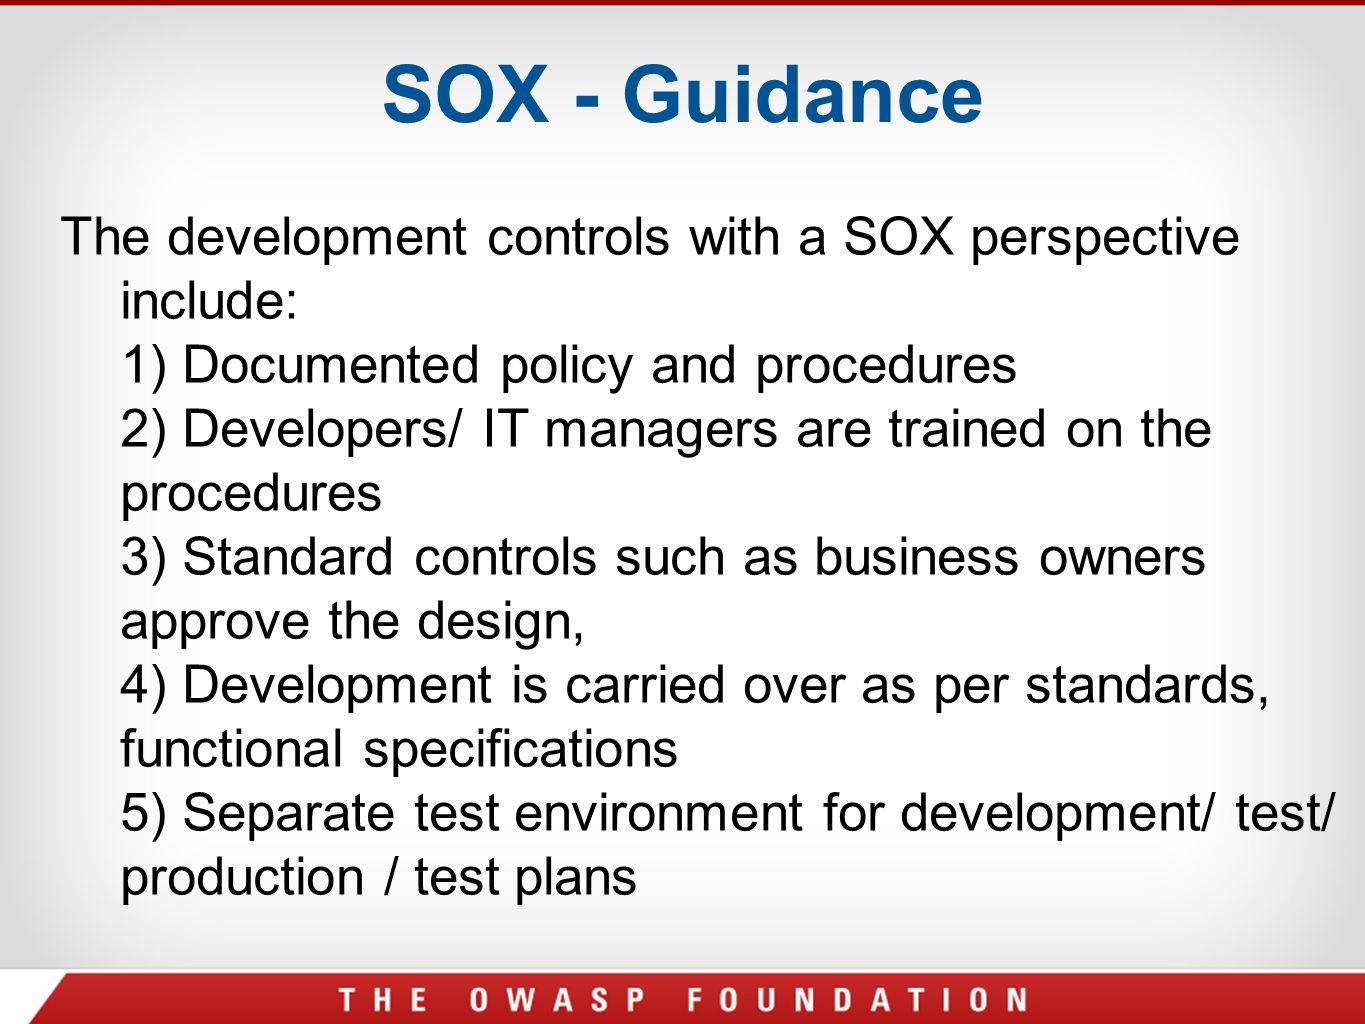 SOX - Guidance The development controls with a SOX perspective include: 1) Documented policy and procedures 2) Developers/ IT managers are trained on